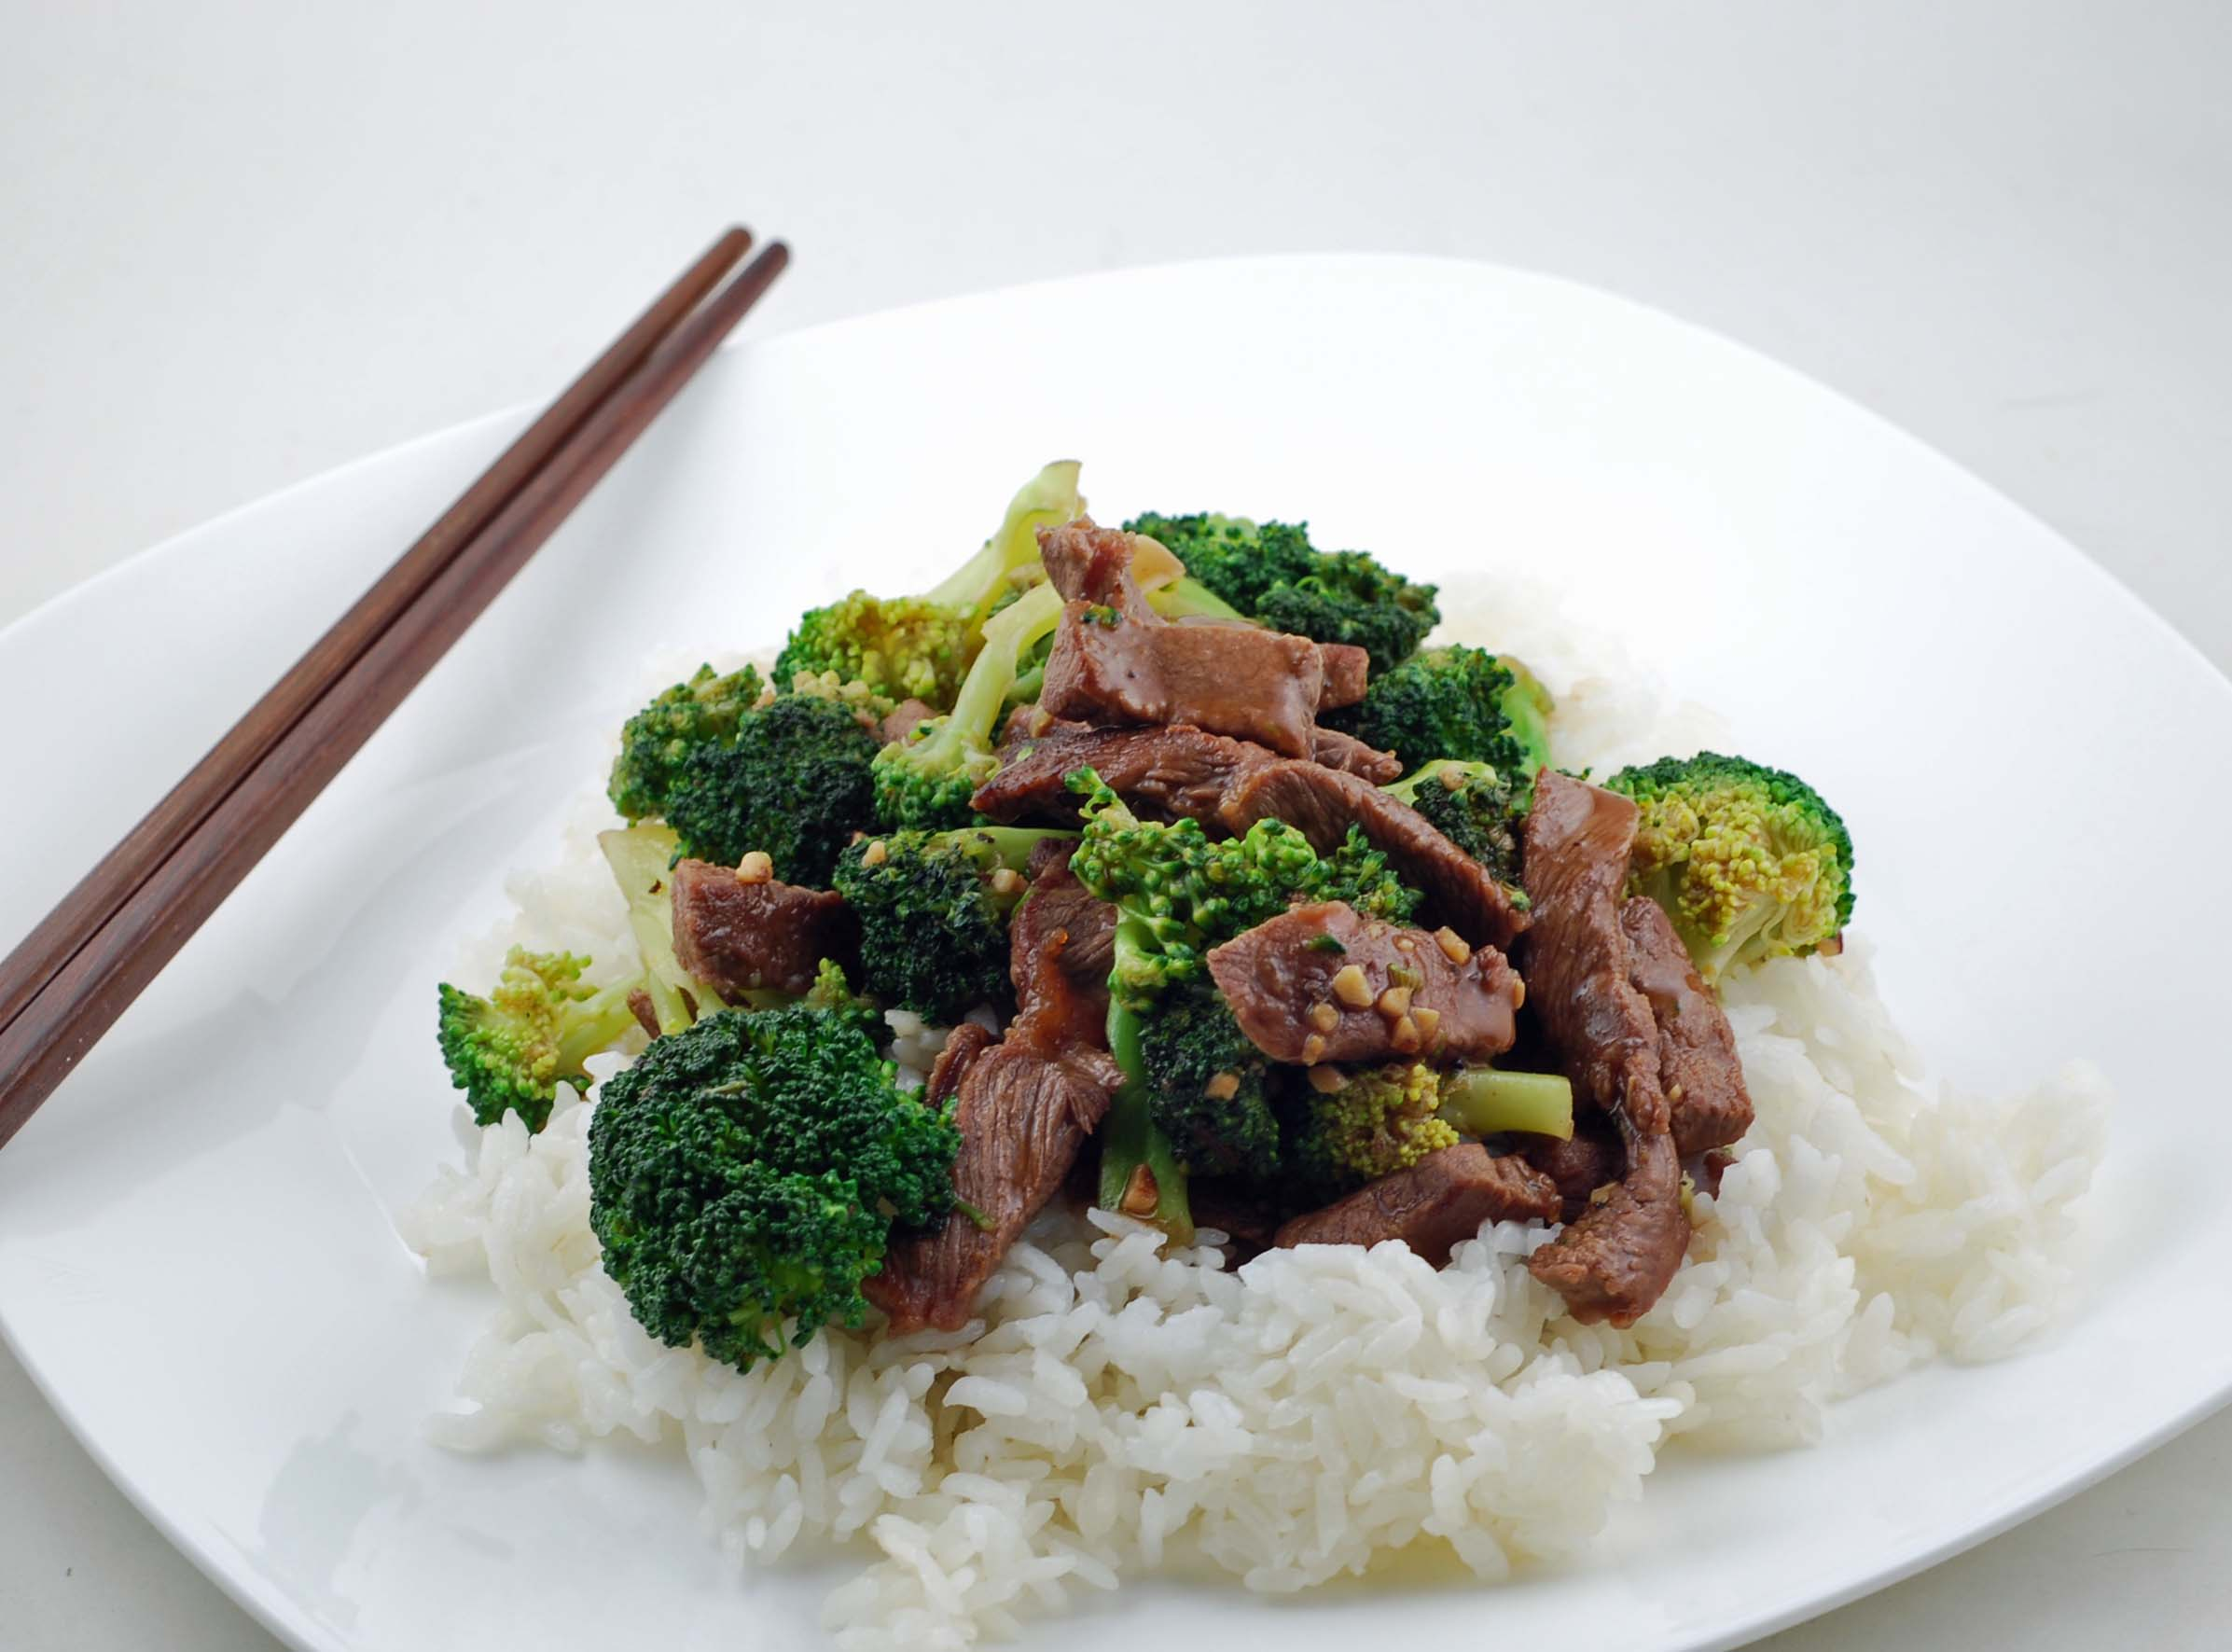 Chinese beef broccoli blissfully delicious chinese beef broccoli in celebration forumfinder Image collections